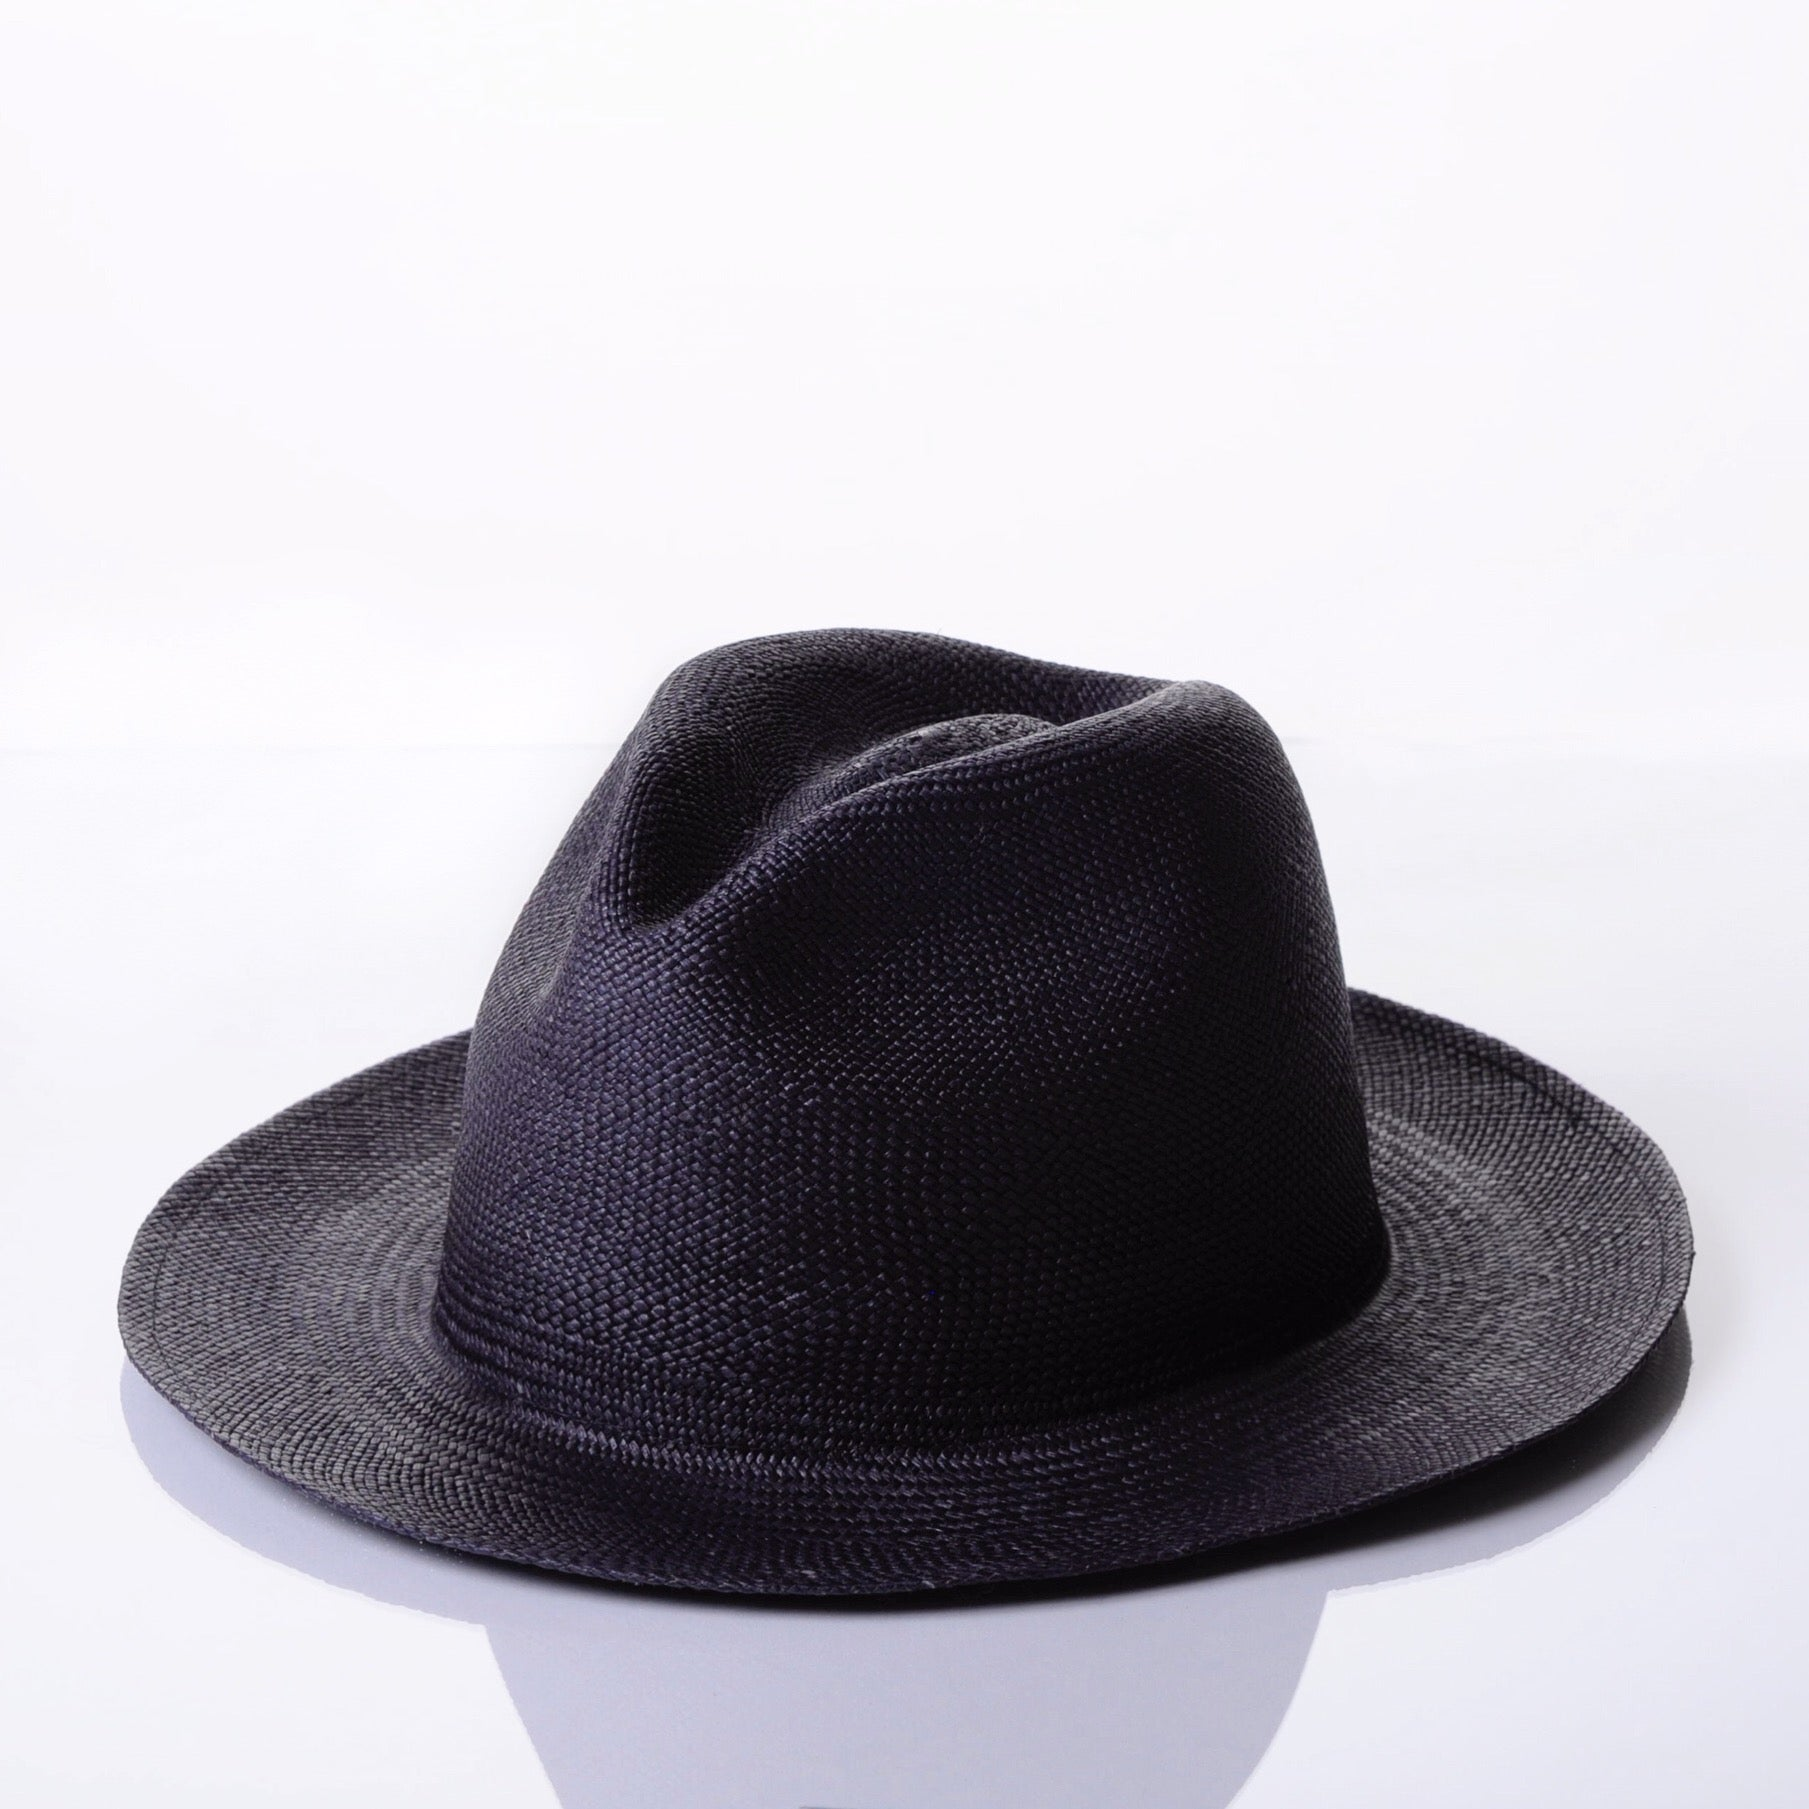 Customize Your Hat- The Fino Hat